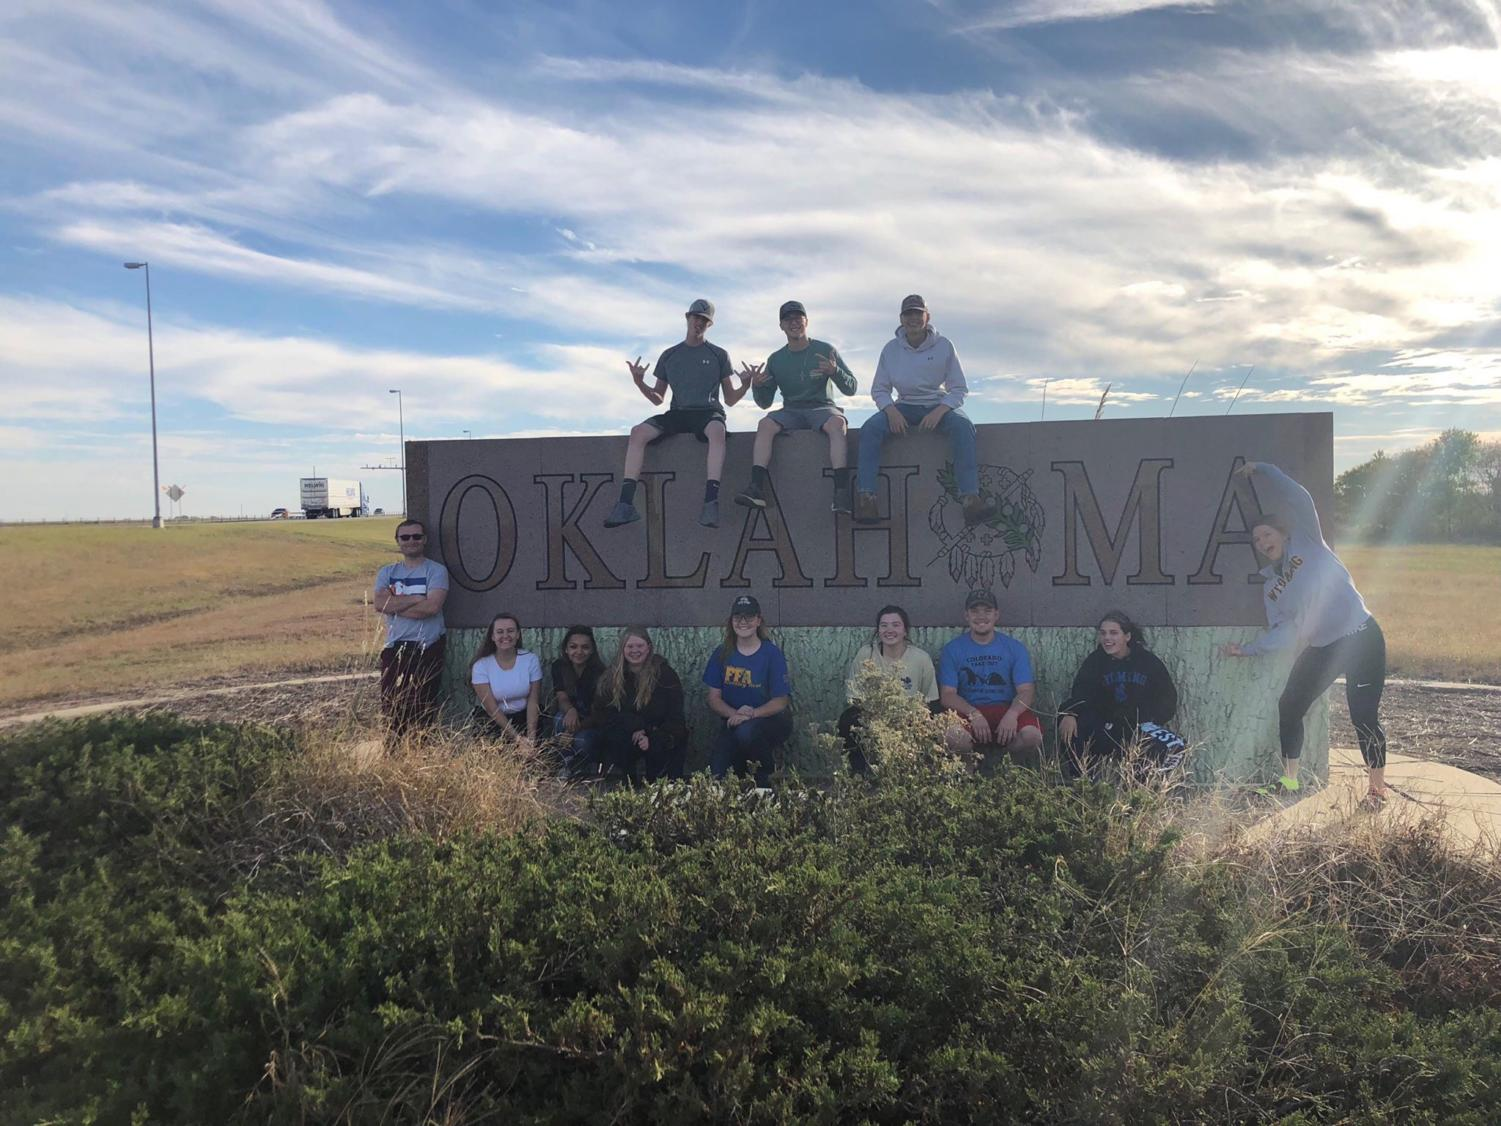 FFA officers pose for a picture at the great stateline of Oklahoma.